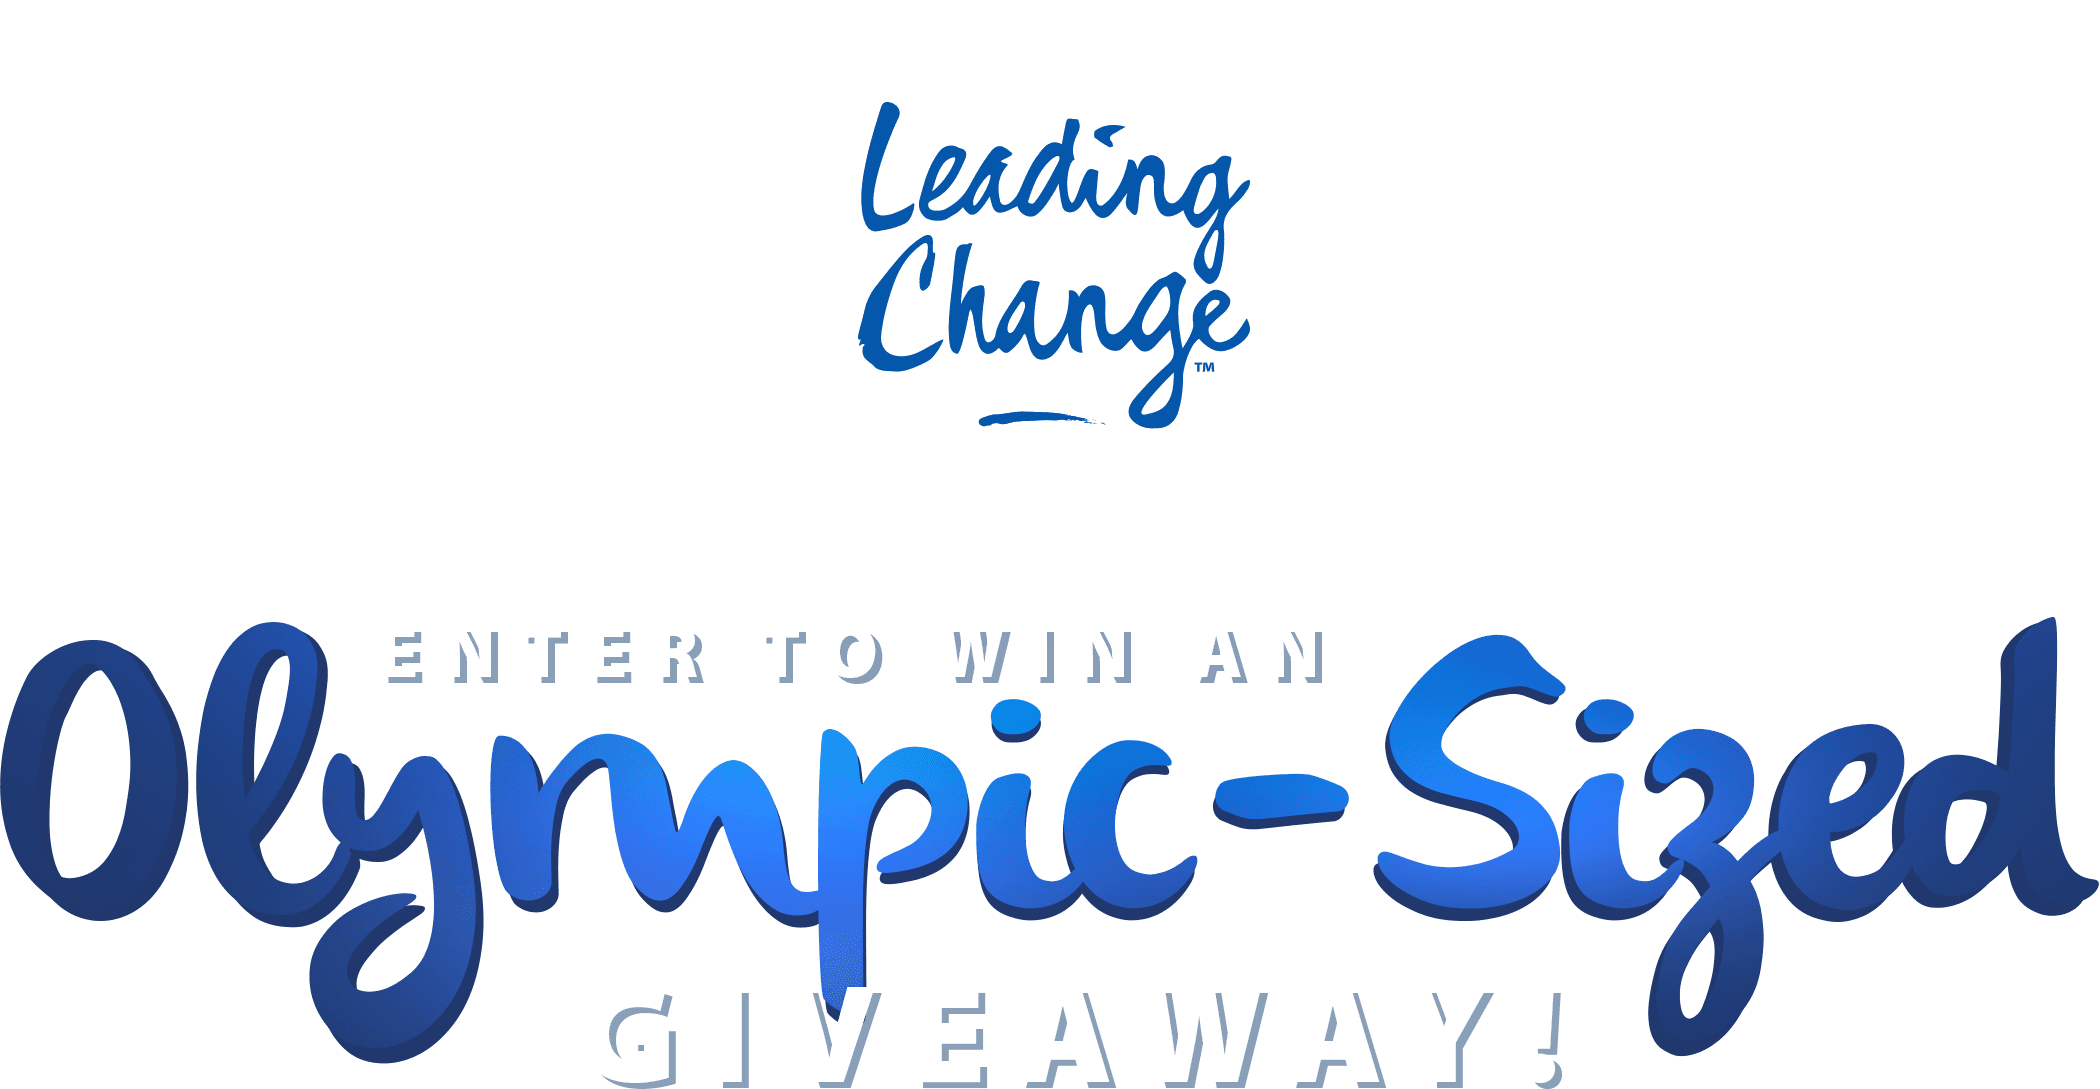 Leading Change: The Campaign for USD. Enter to win an Olympic Sized Giveaway!